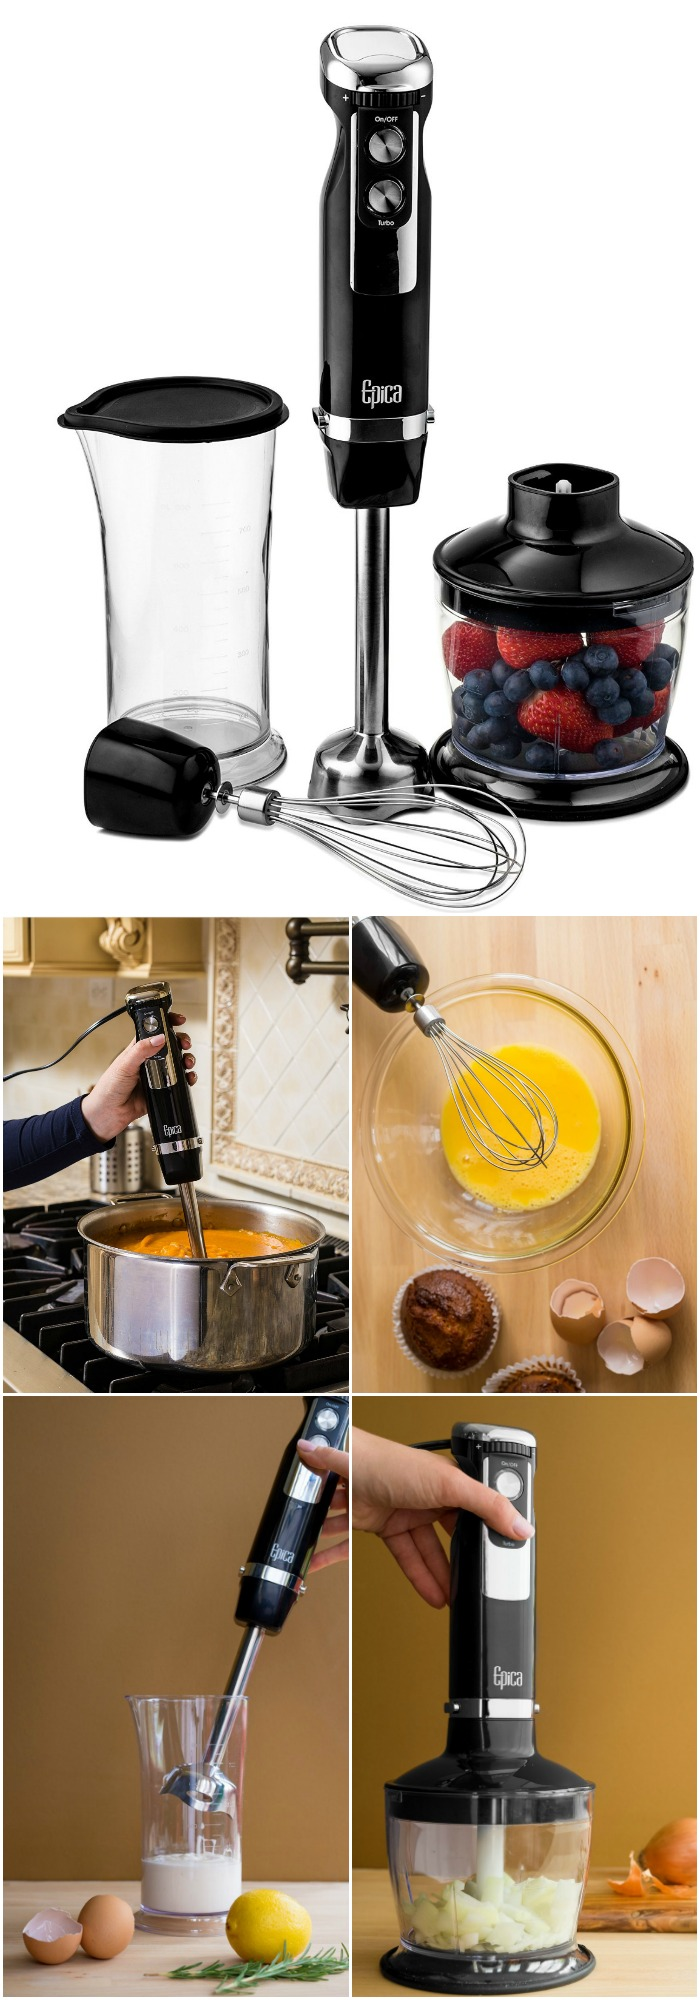 Home Gadgets - If you don't have a hand blender it's time to get one. Best thing ever!